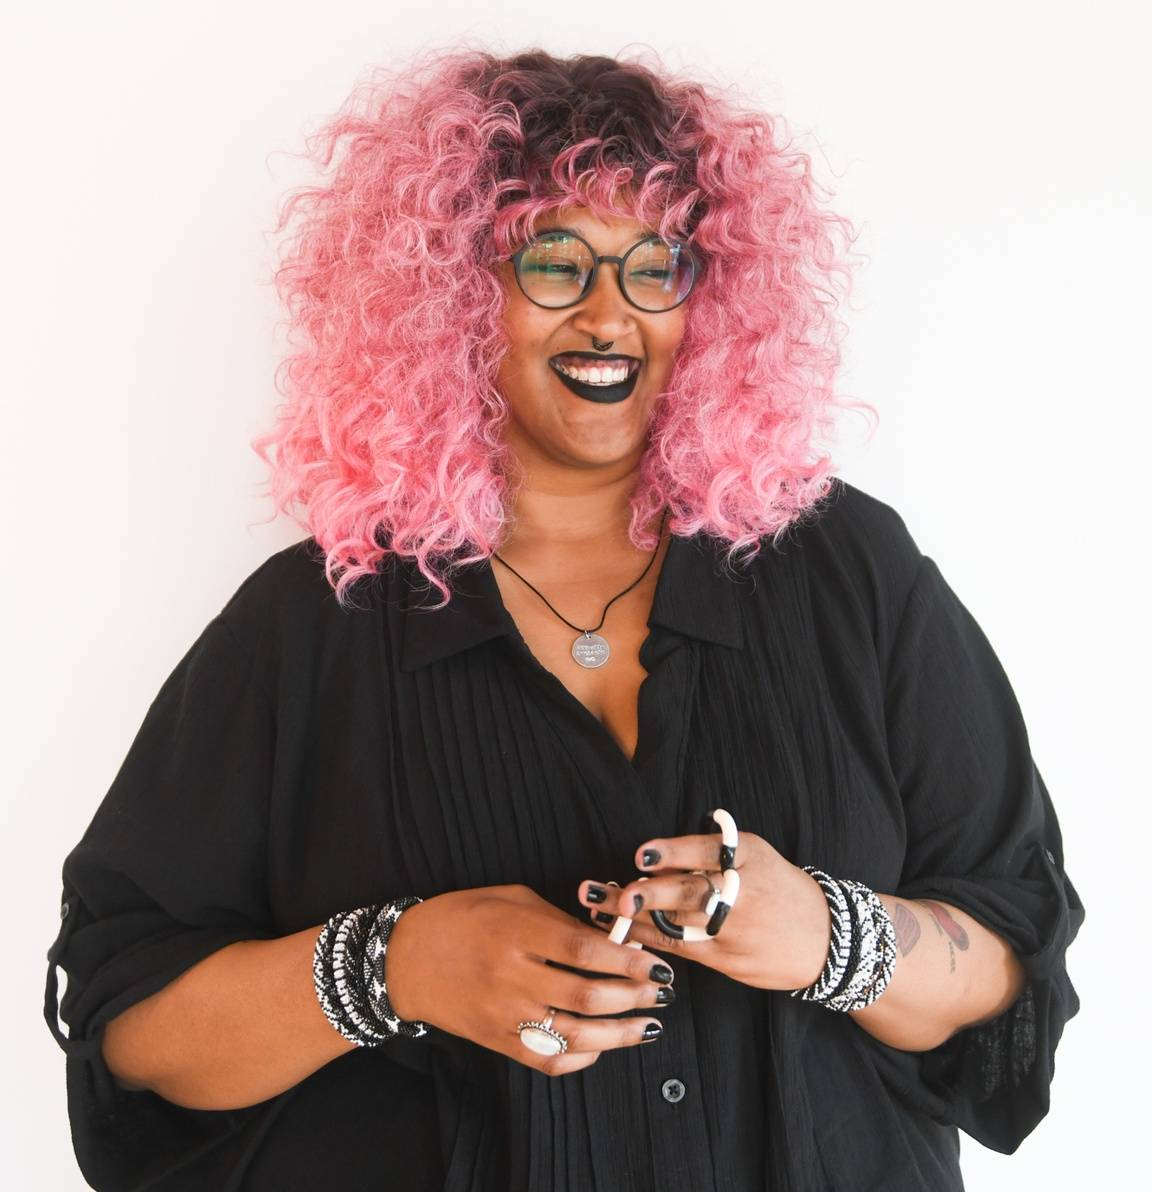 Woman with pink hair smiling